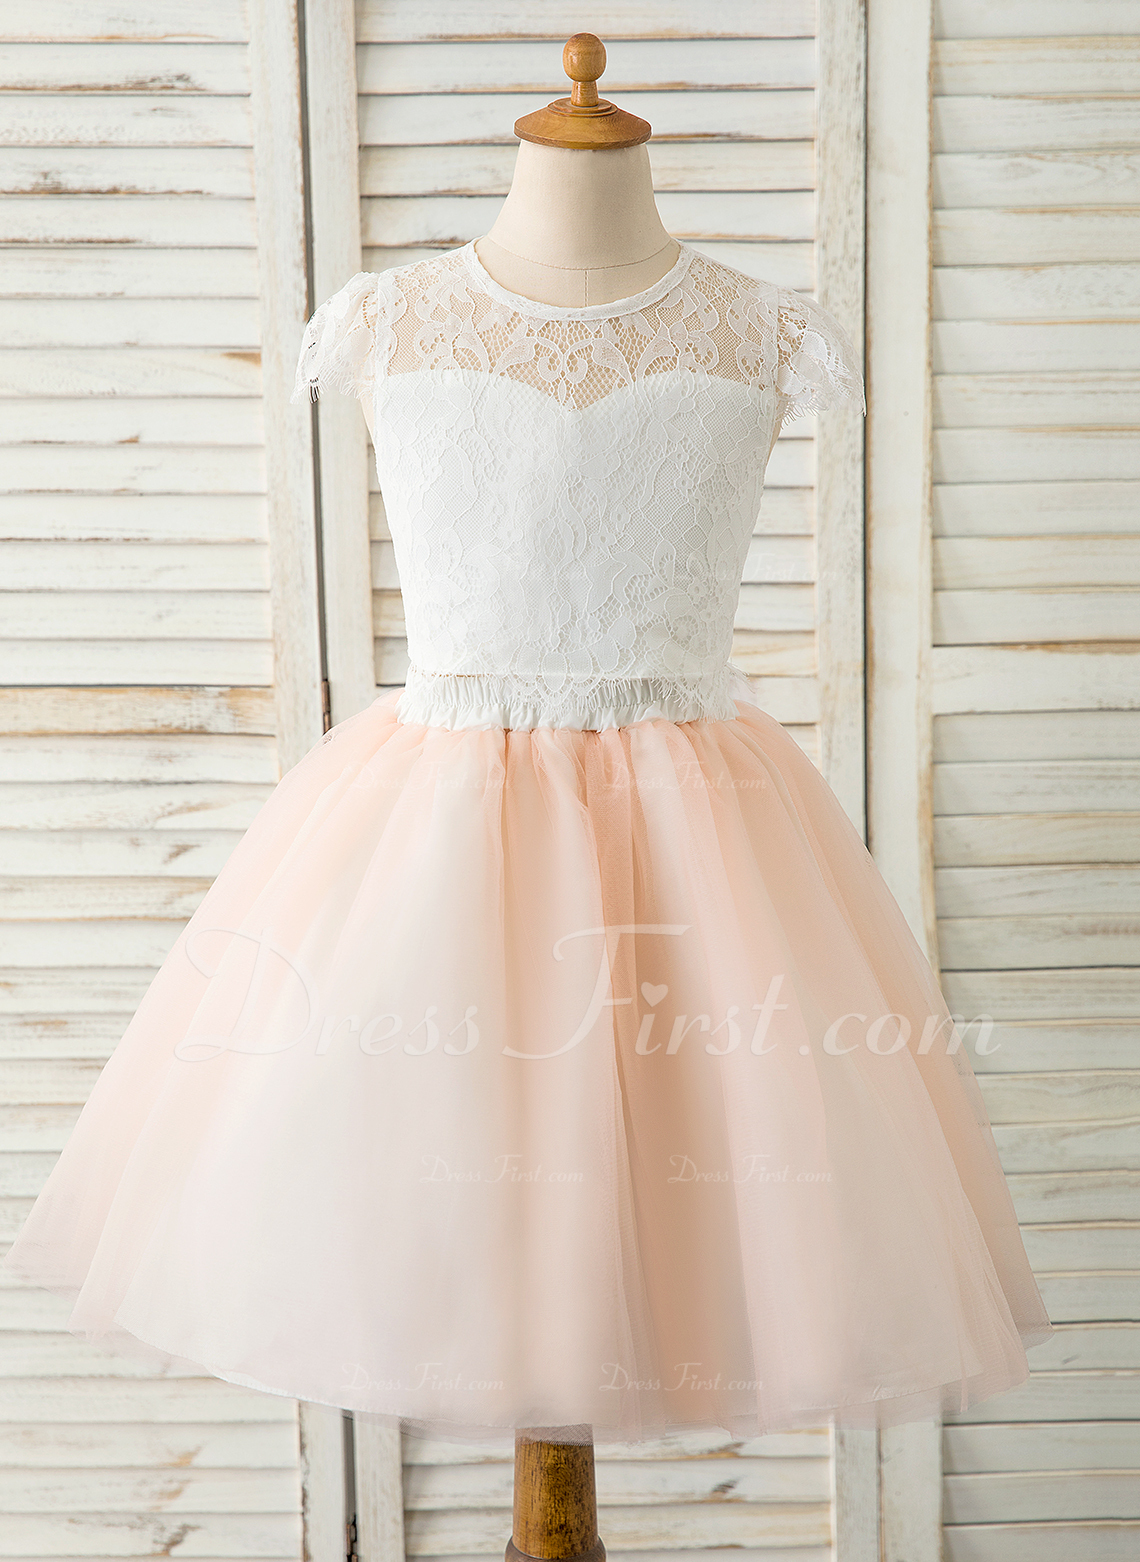 59b65cb2f0a1 Loading zoom. Loading. Color: Pearl Pink. A-Line Knee-length Flower Girl  Dress - Tulle/Lace Sleeveless Scoop Neck ...